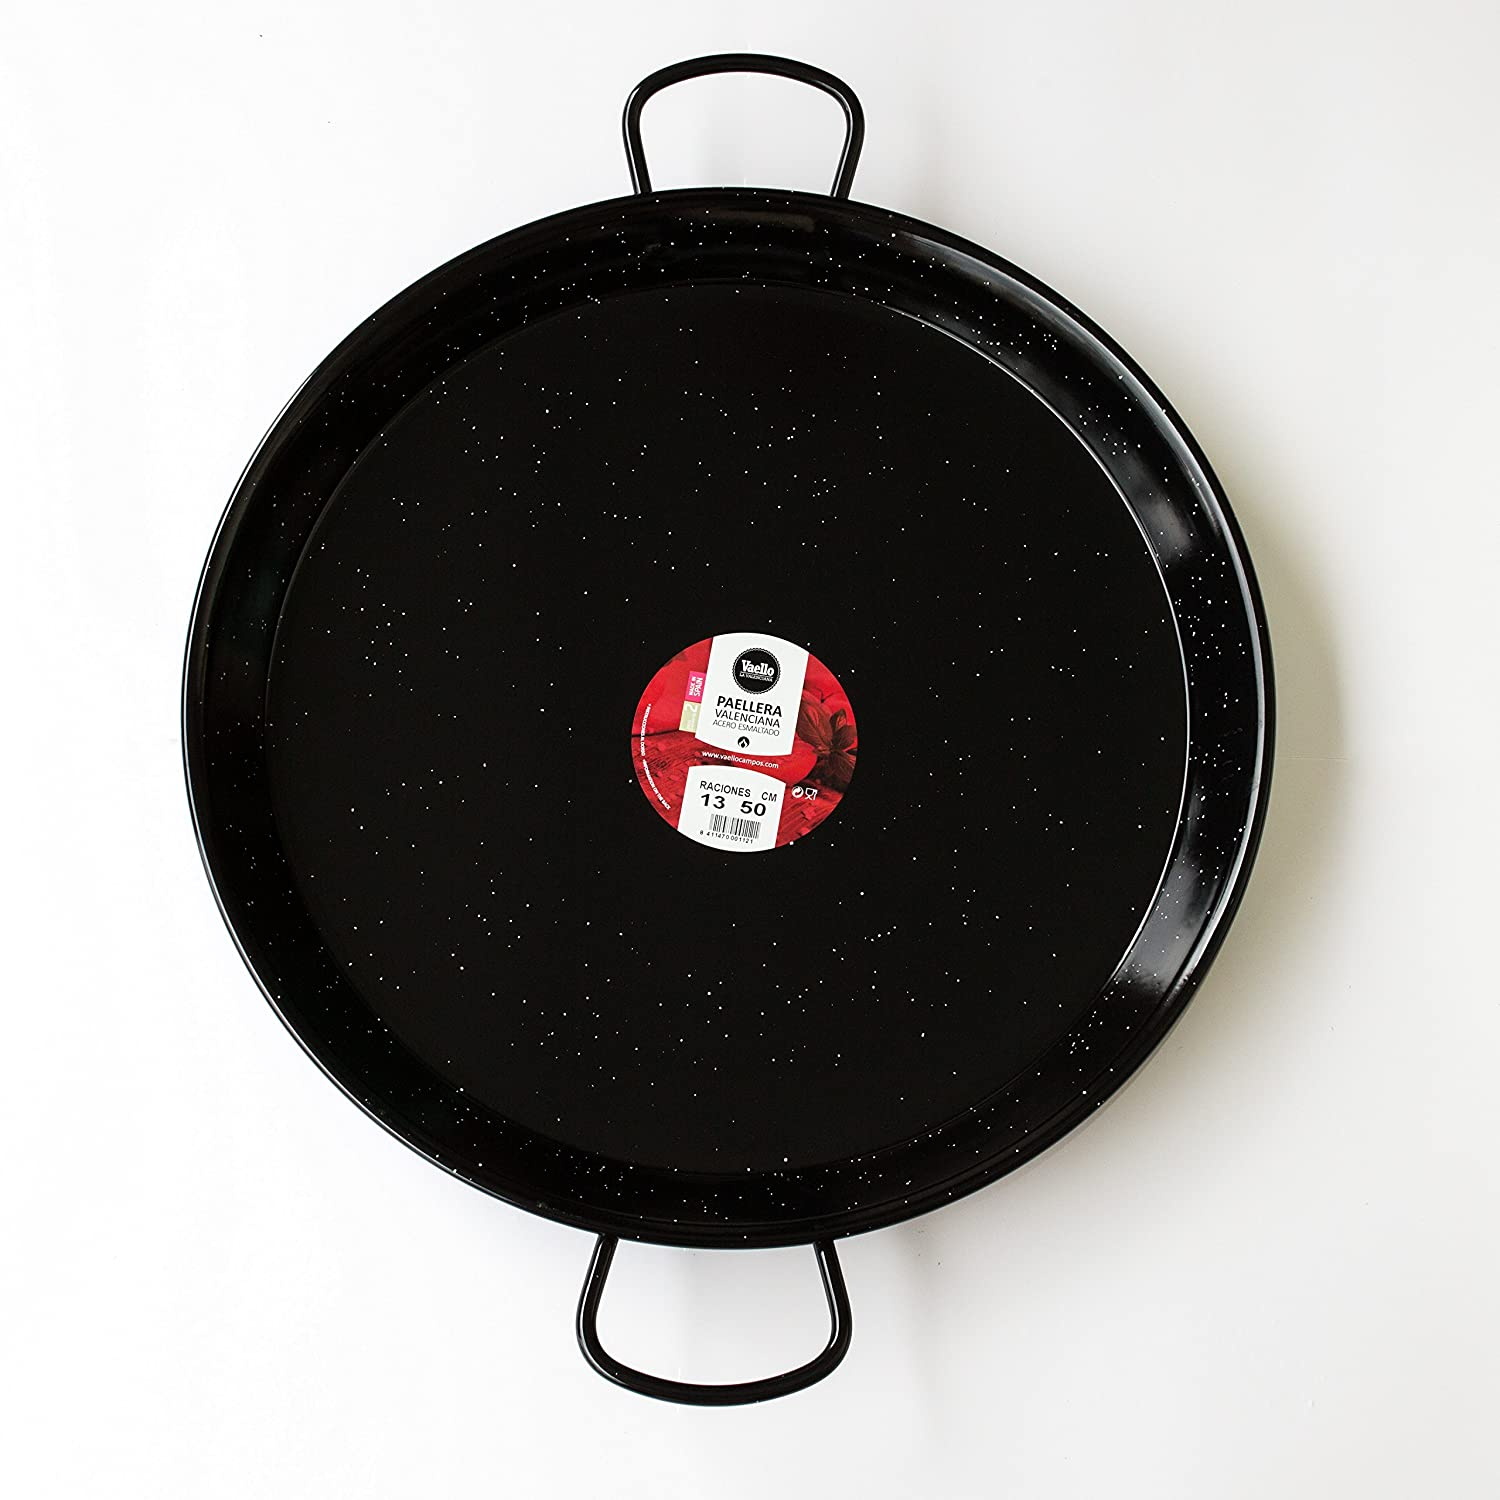 Amazon.com: Paella Pan Enamelled + Paella Gas Burner and Stand Set - Complete Paella Kit for up to 13 Servings (Nonstick): Kitchen & Dining